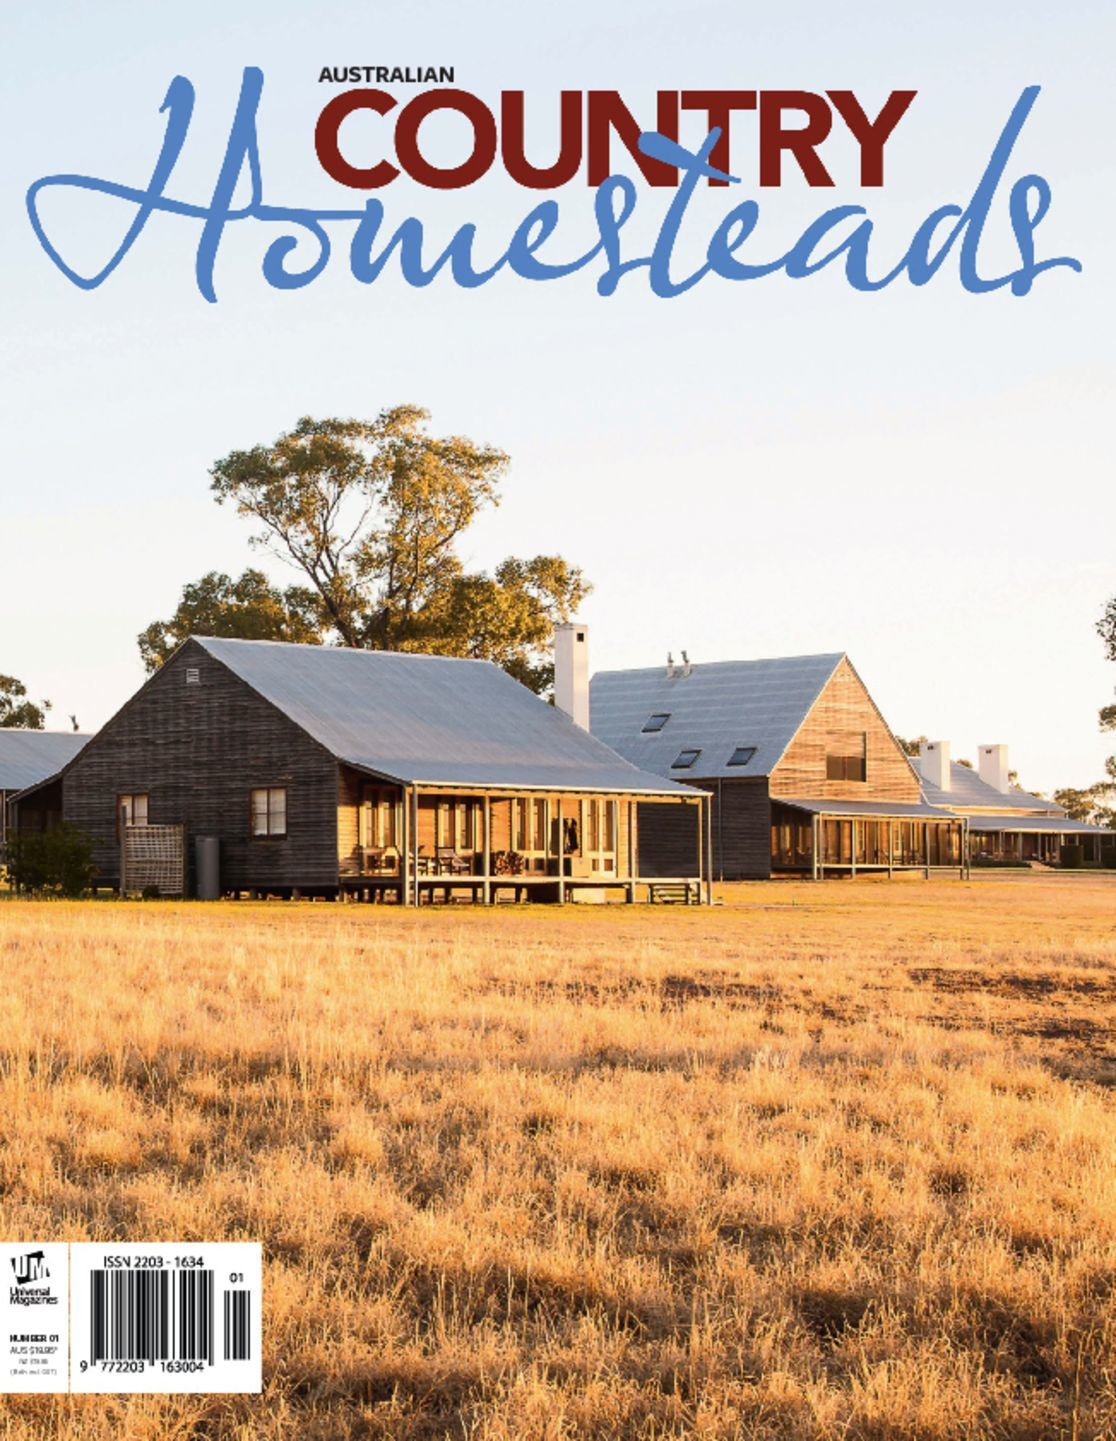 Australian Country Homesteads Digital